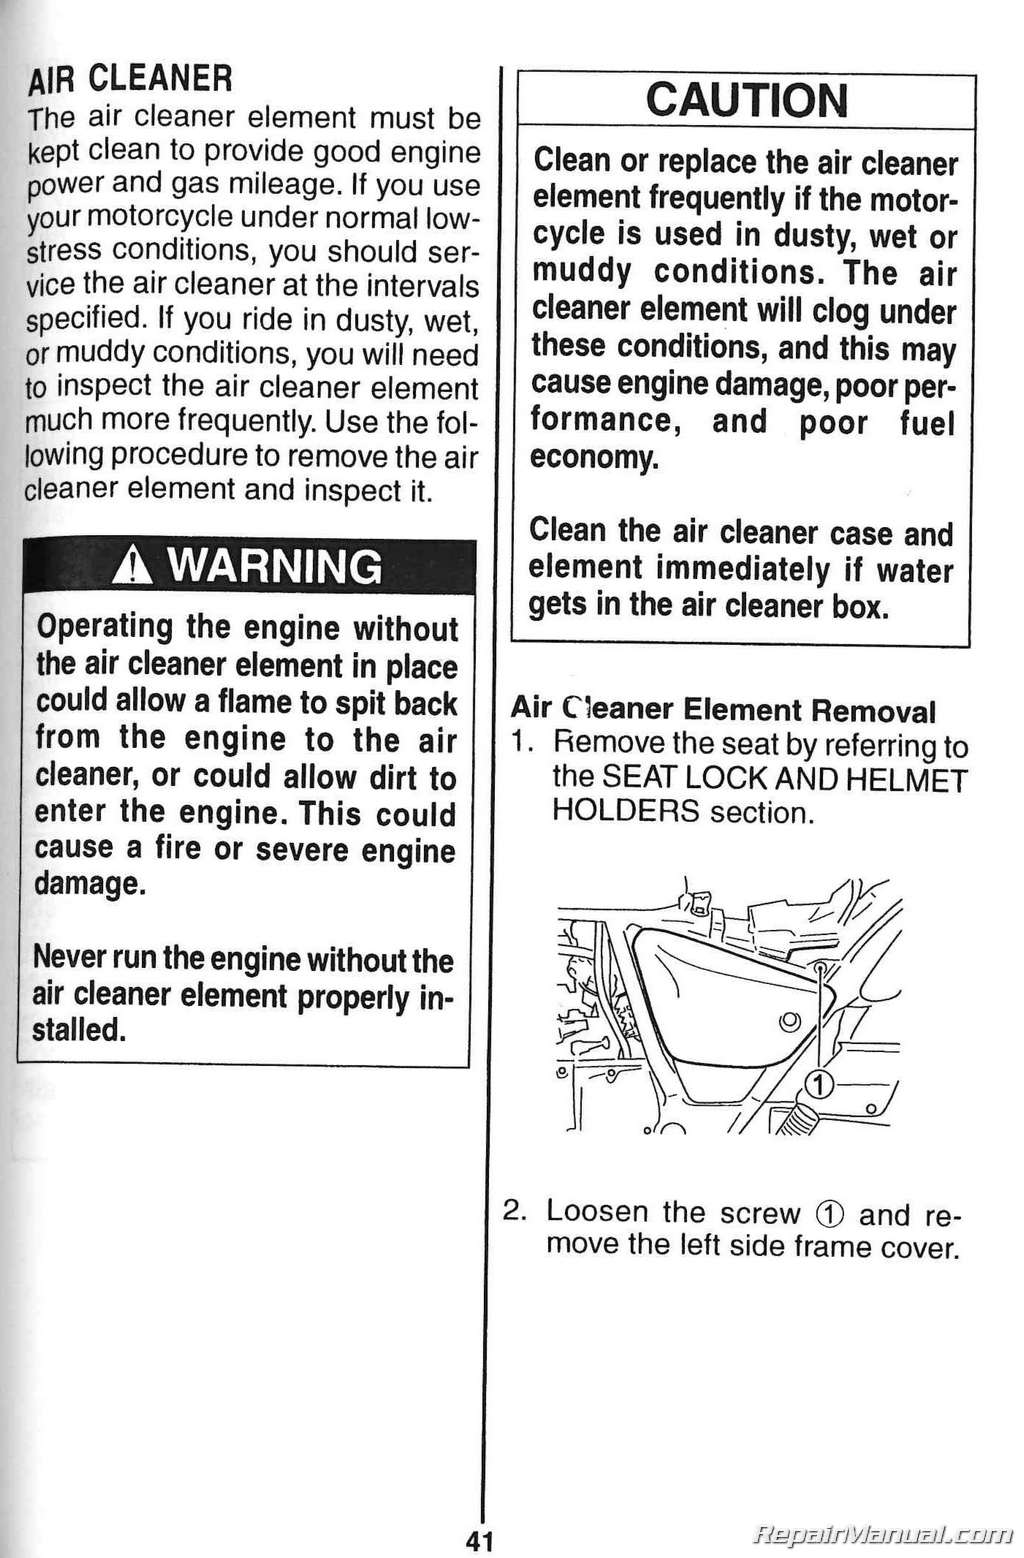 2003 2004 Suzuki GZ250 Marauder Owners Manual : 99011